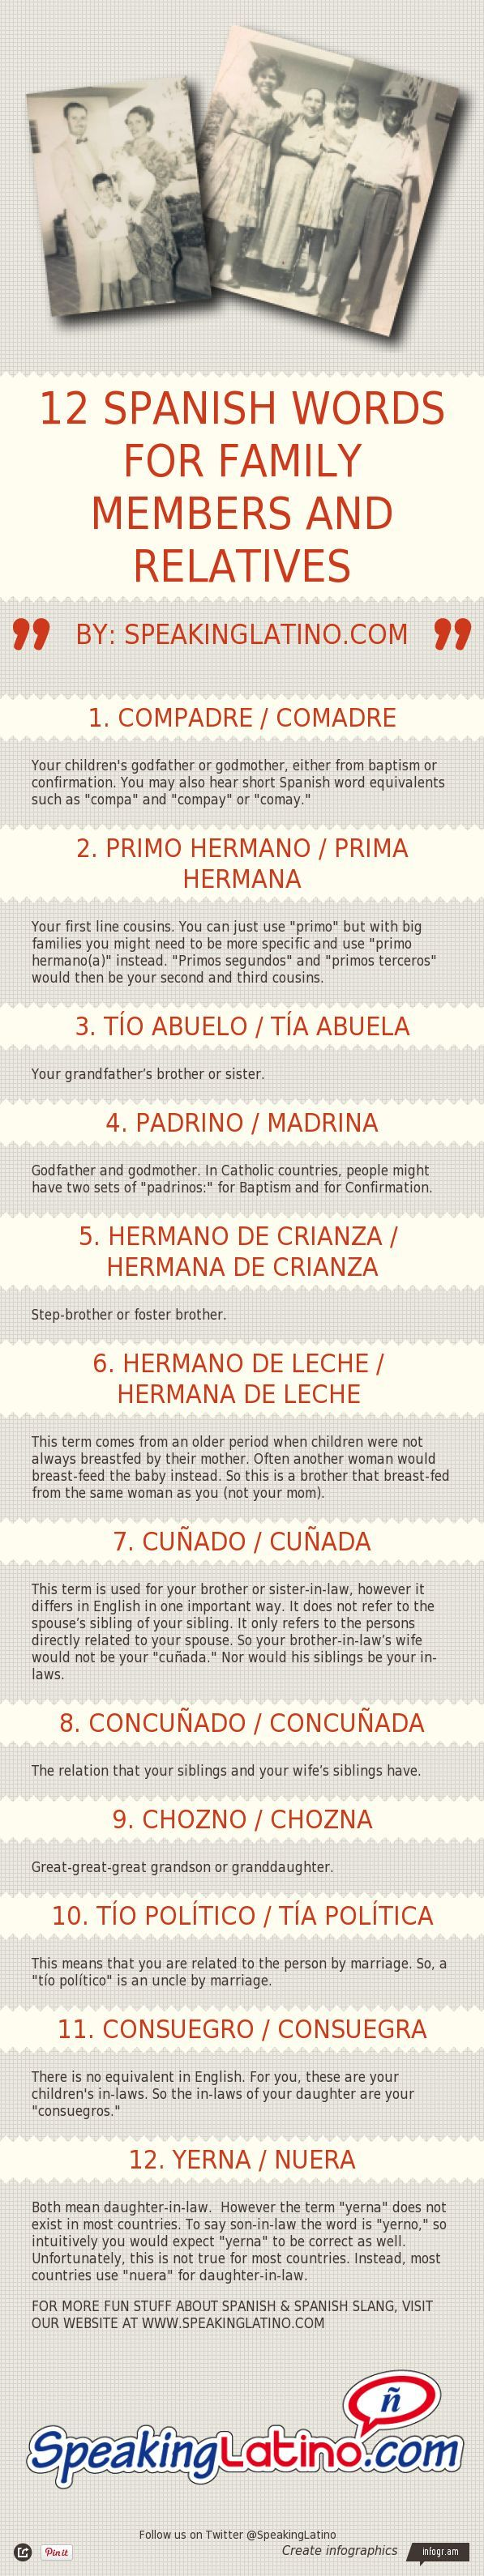 Spanish vocabulary: Family members in Spanish. #Family in Spanish http://www.speakinglatino.com/puerto-rican-family-tree/